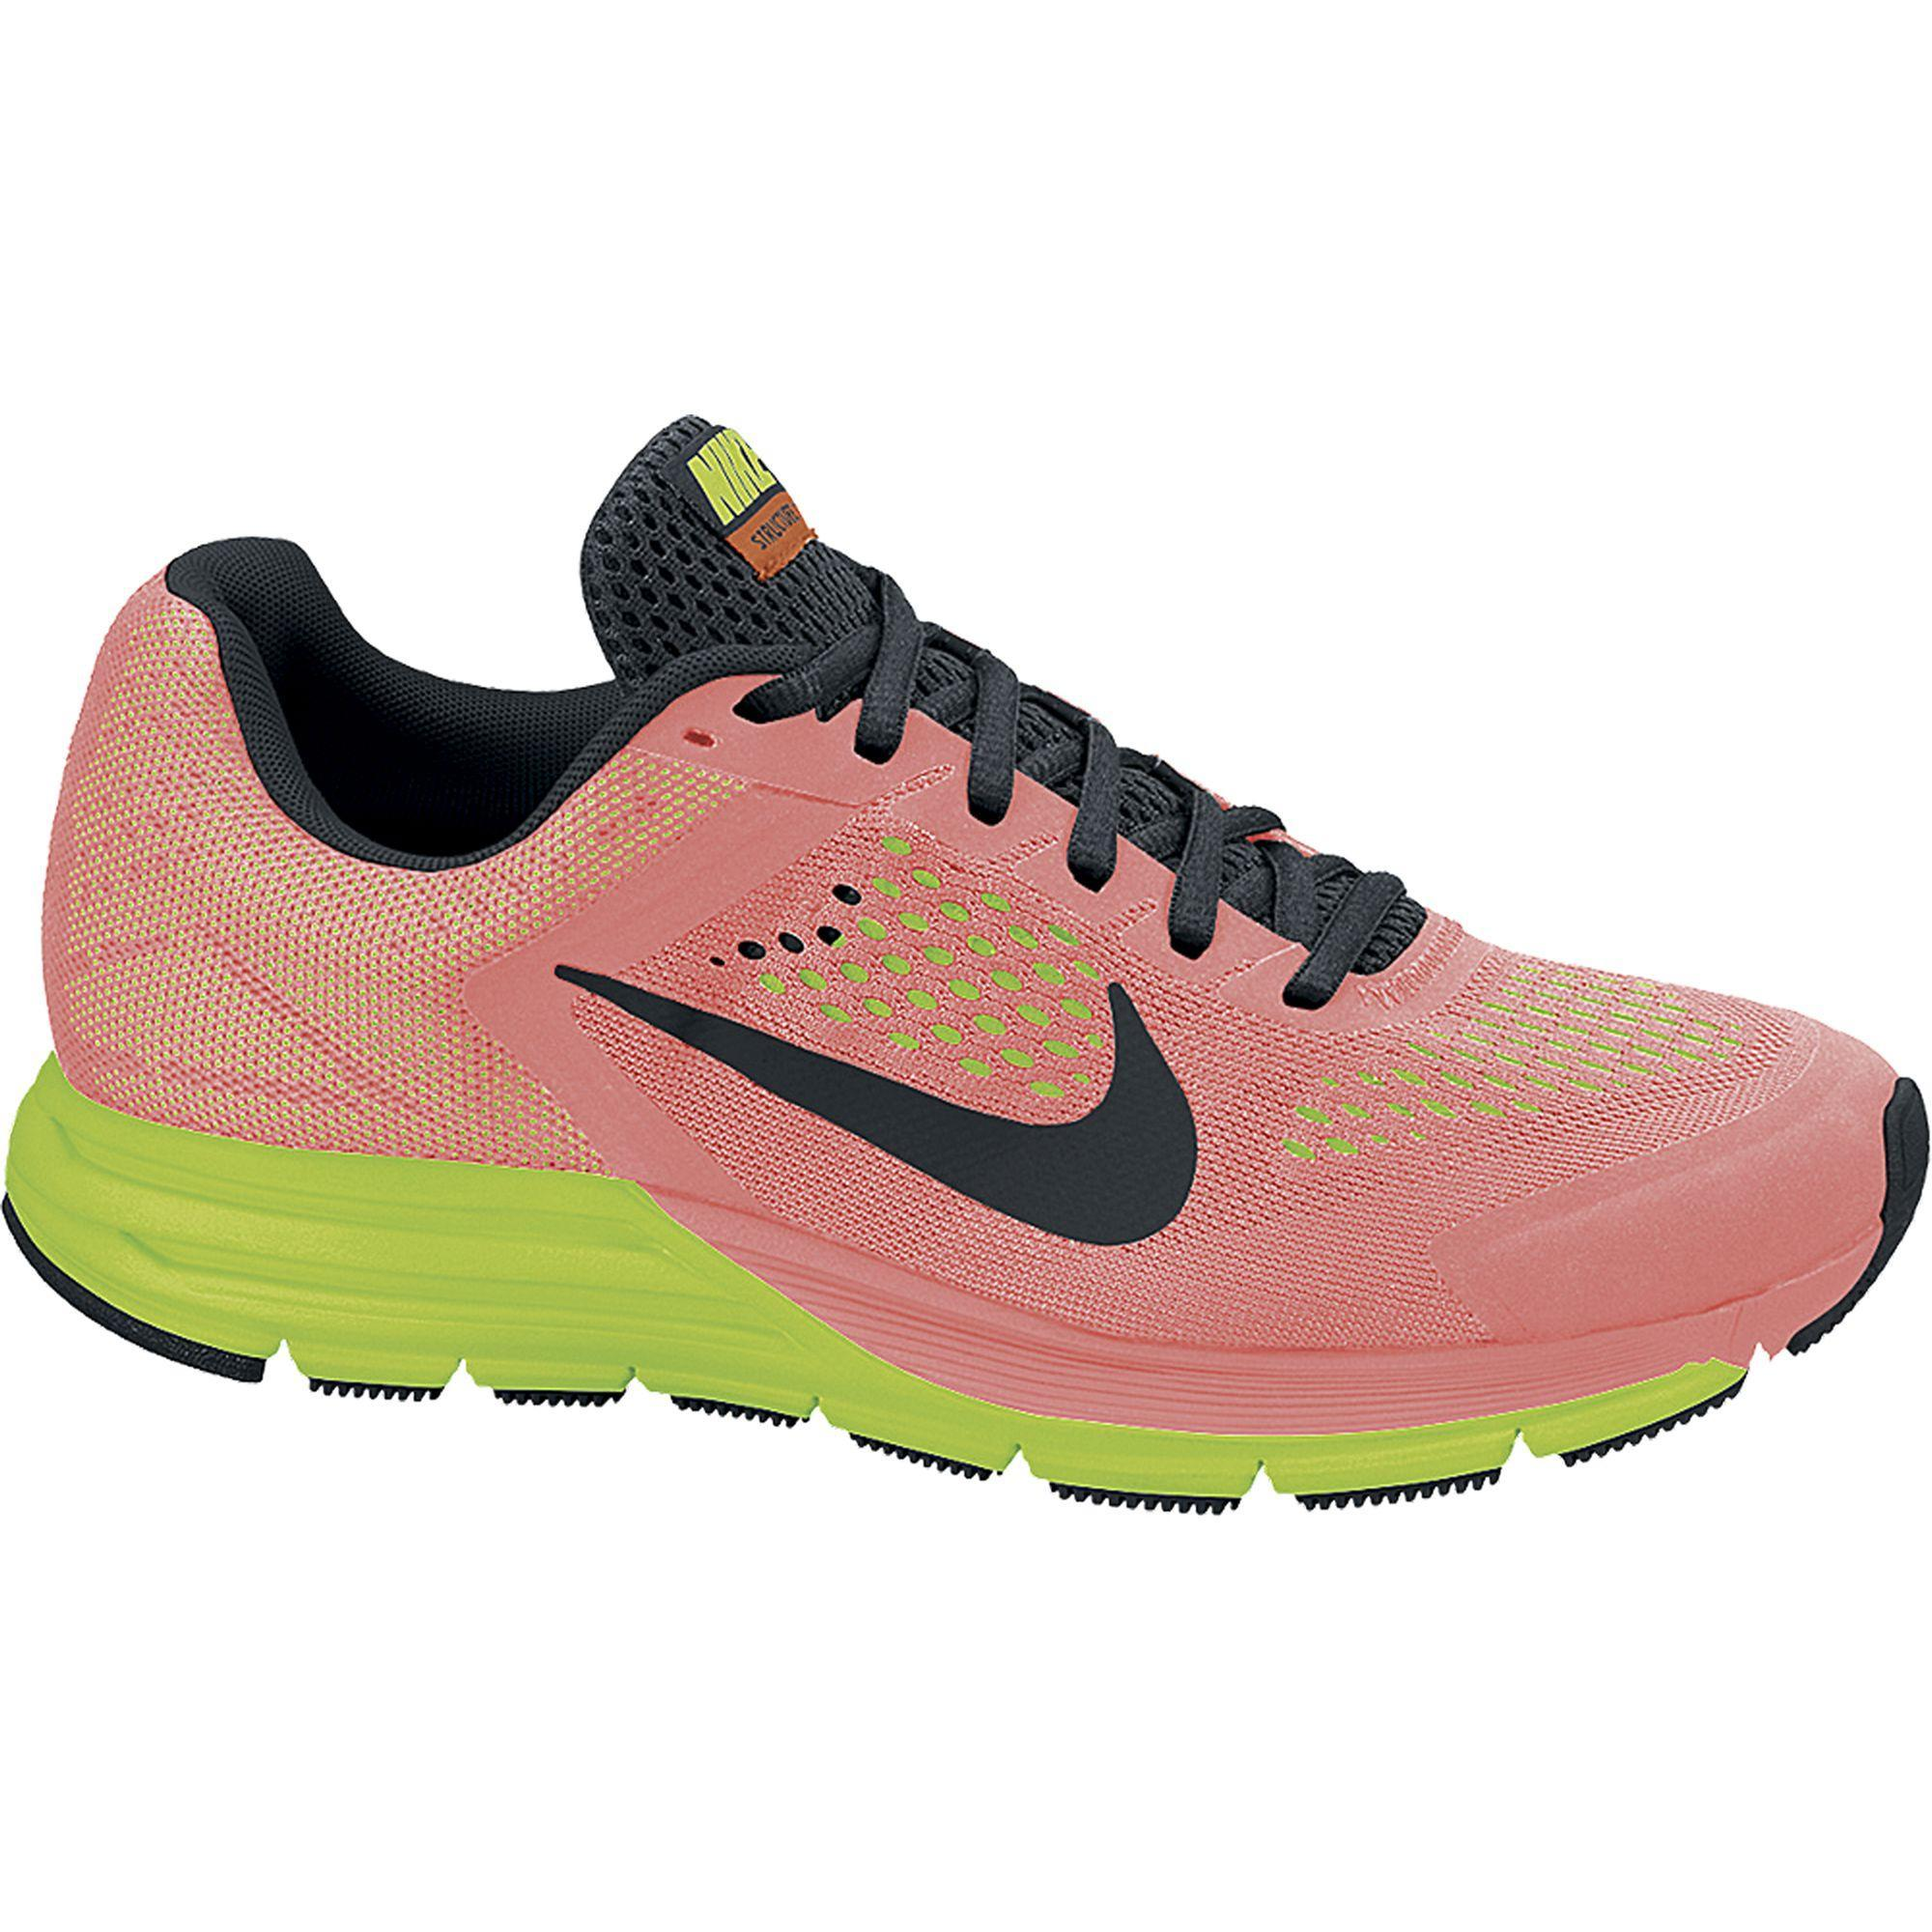 6fdf4c7bb1ec9 ... amazon nike womens zoom structure 17 running shoes bright mango volt  tennisnuts 7c154 d3deb